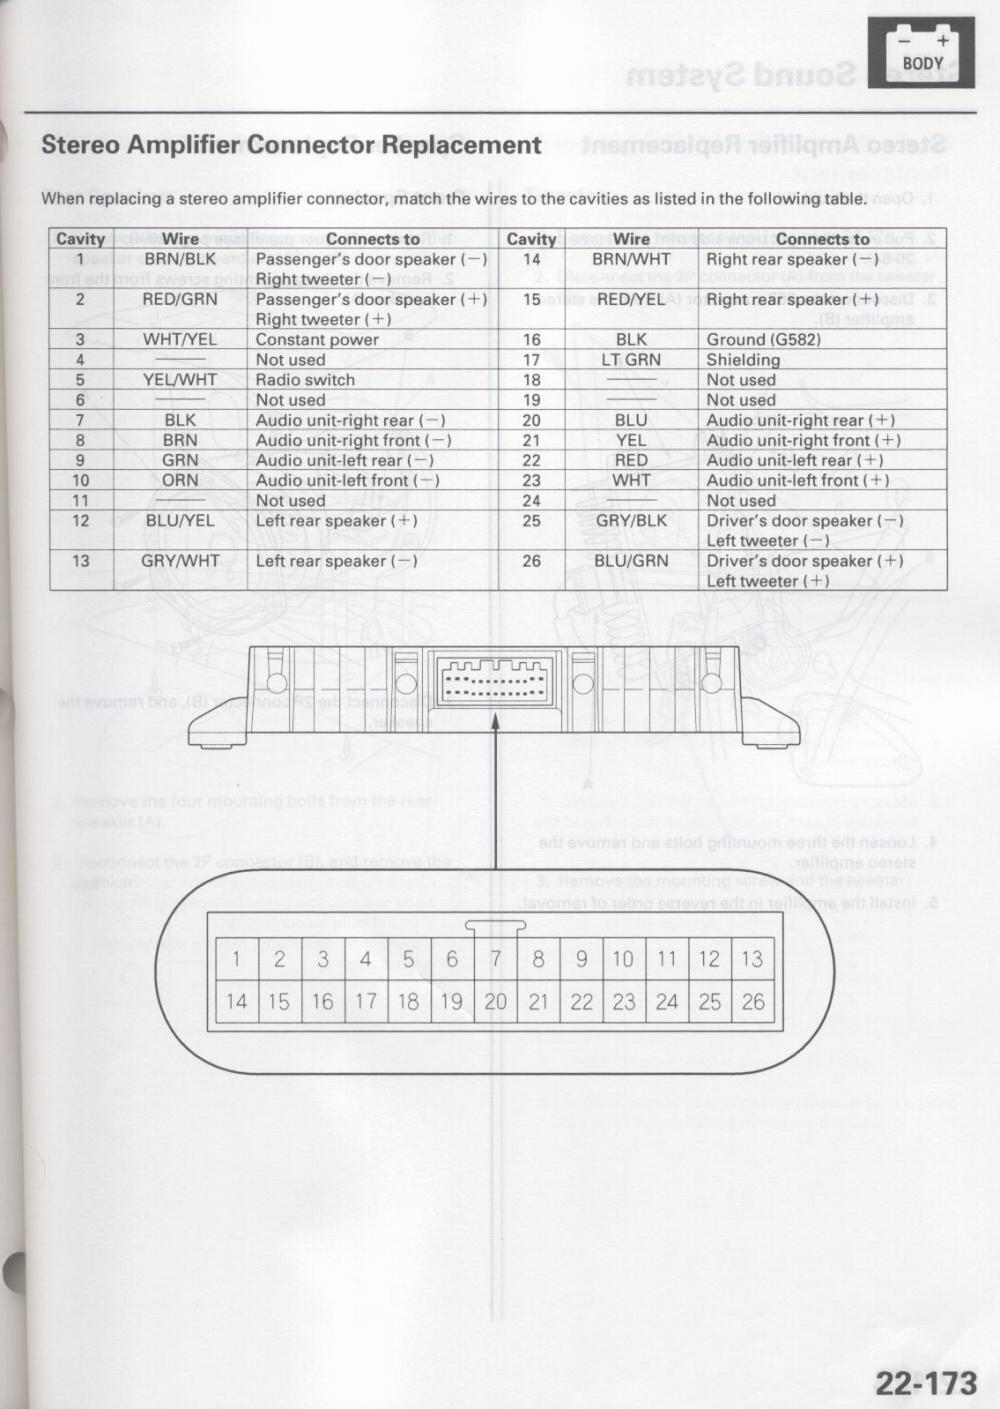 Car Radio Stereo Audio Wiring Diagram Autoradio Connector Wire Also Alpine Installation Schematic Schema Esquema De Conexiones Anschlusskammern Konektor